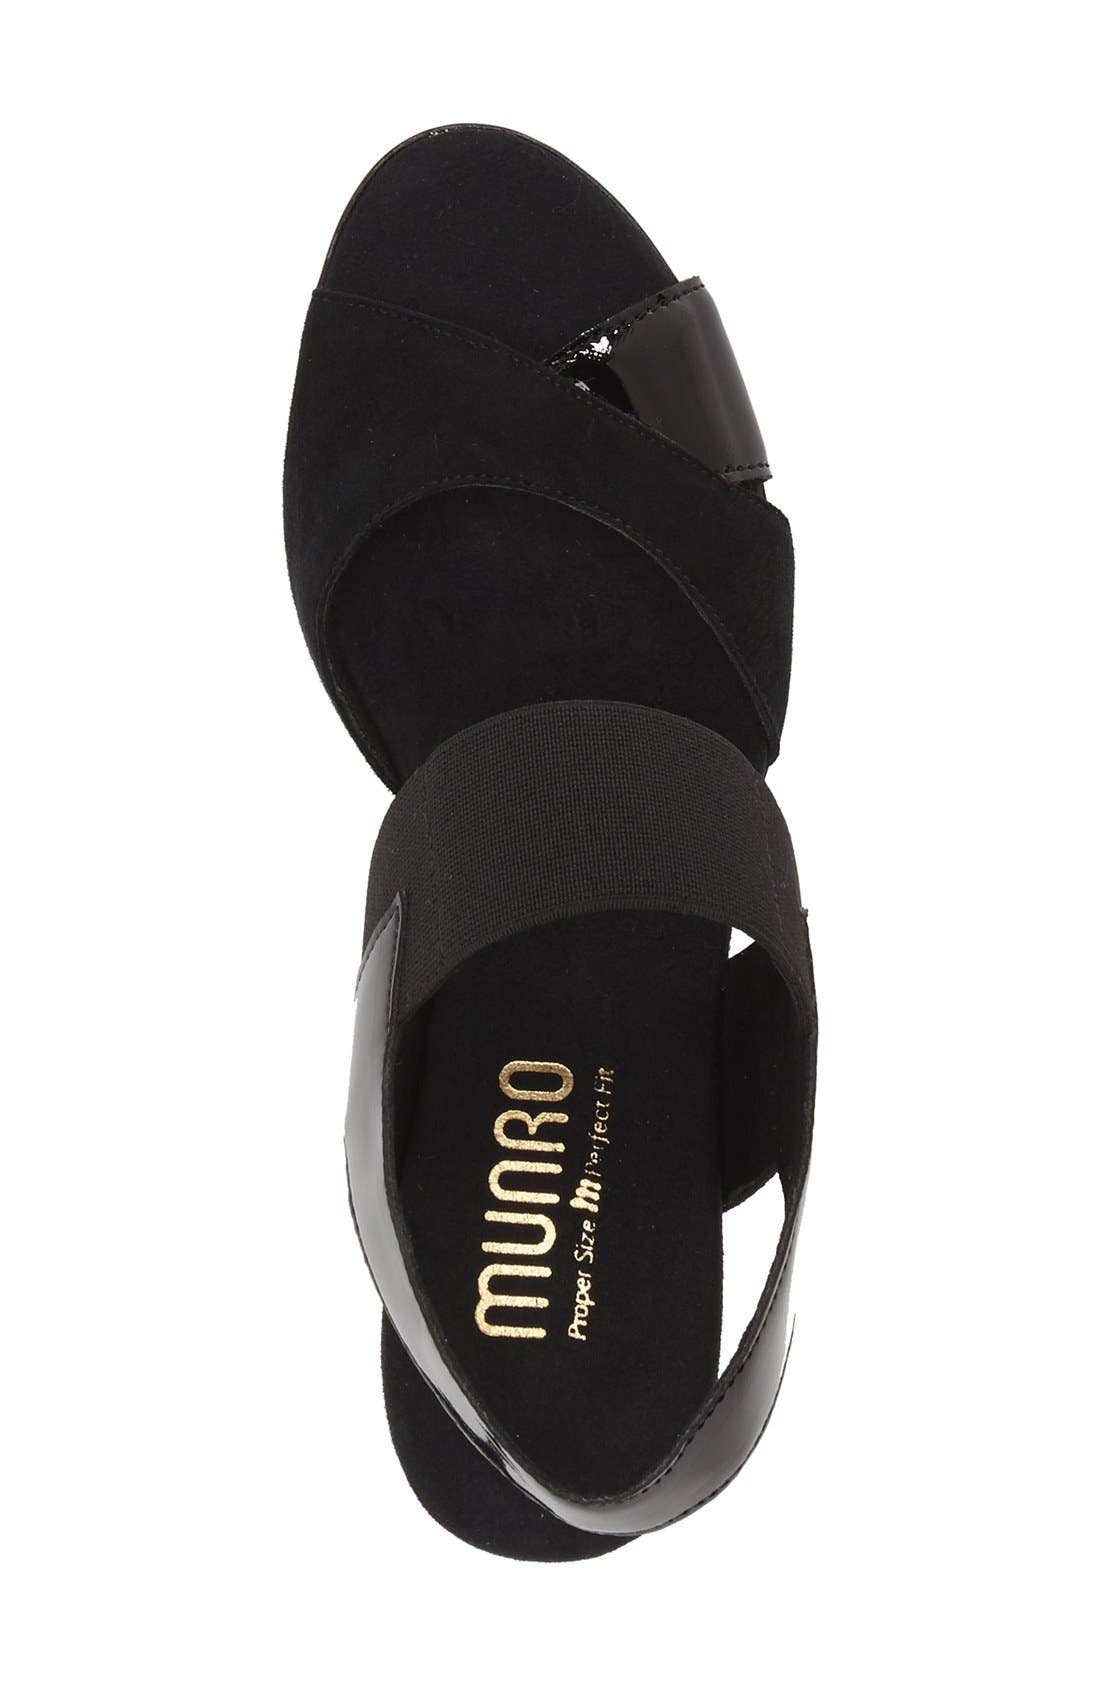 MUNRO,                             Darling Mixed Finish Slingback Sandal,                             Alternate thumbnail 5, color,                             BLACK COMBO